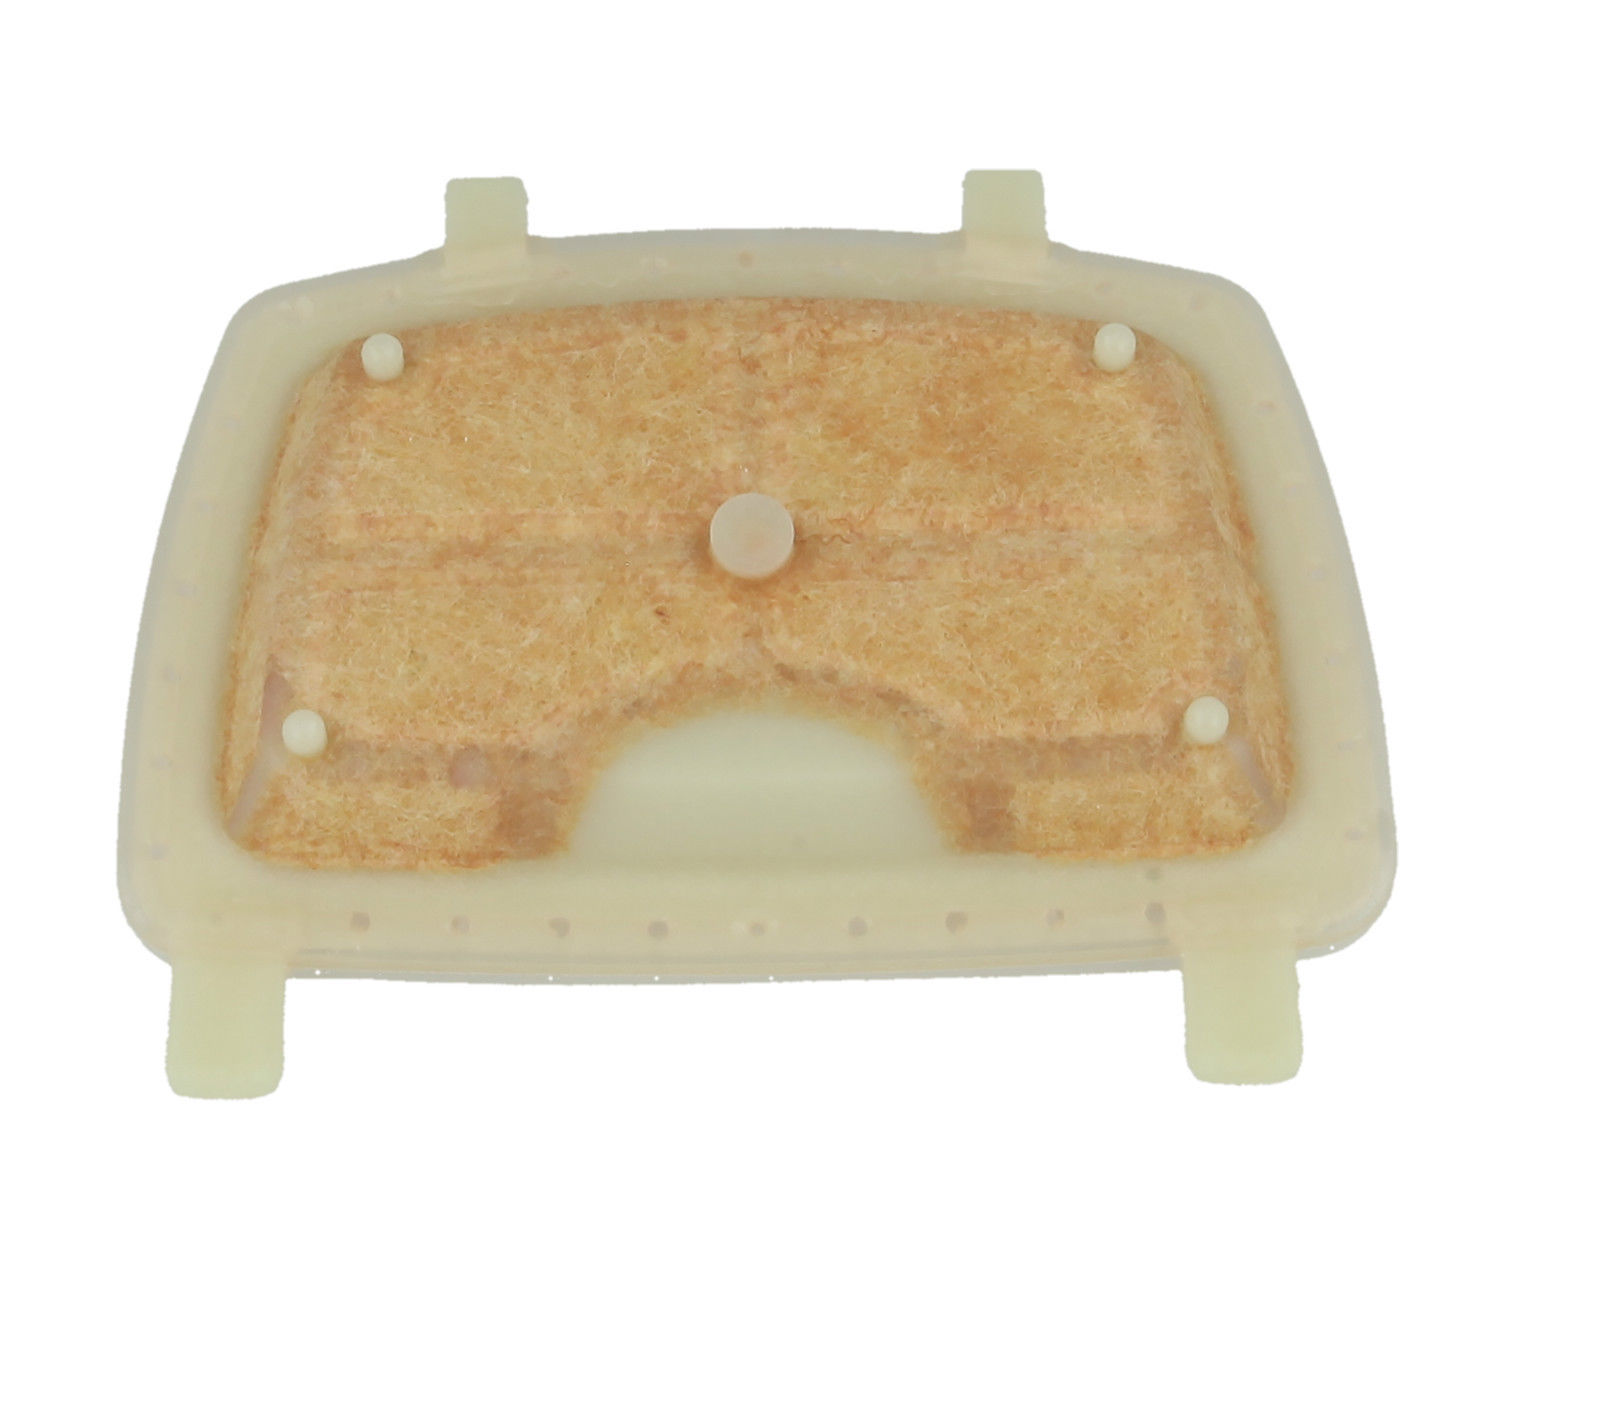 1139 120 1602 Fits Stihl MS171 MS181 MS211 Chainsaw Air Filter